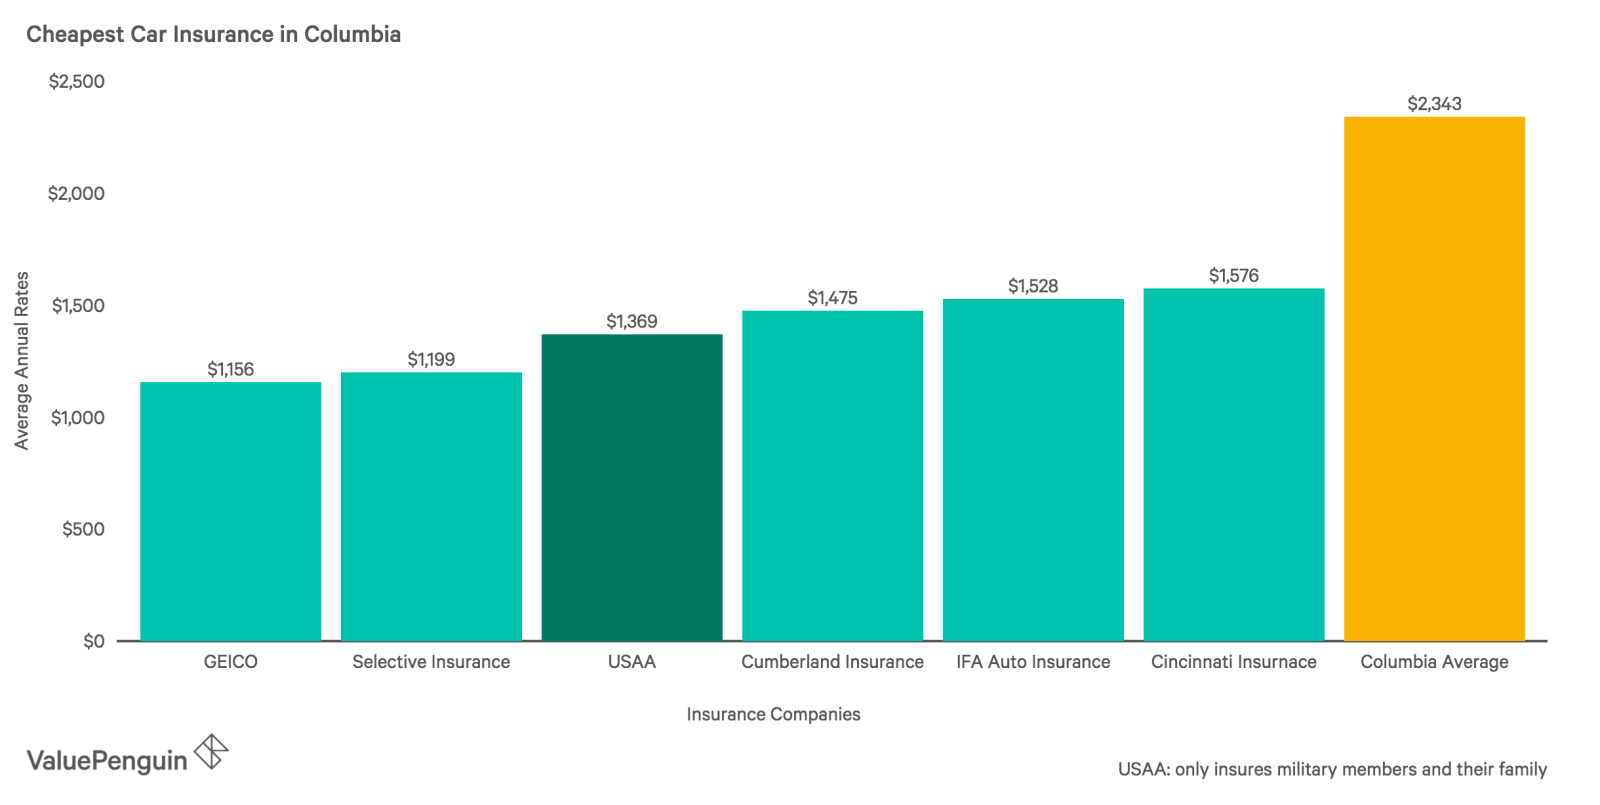 This graph shows the six companies with the lowest average rates for car insurance in Columbia